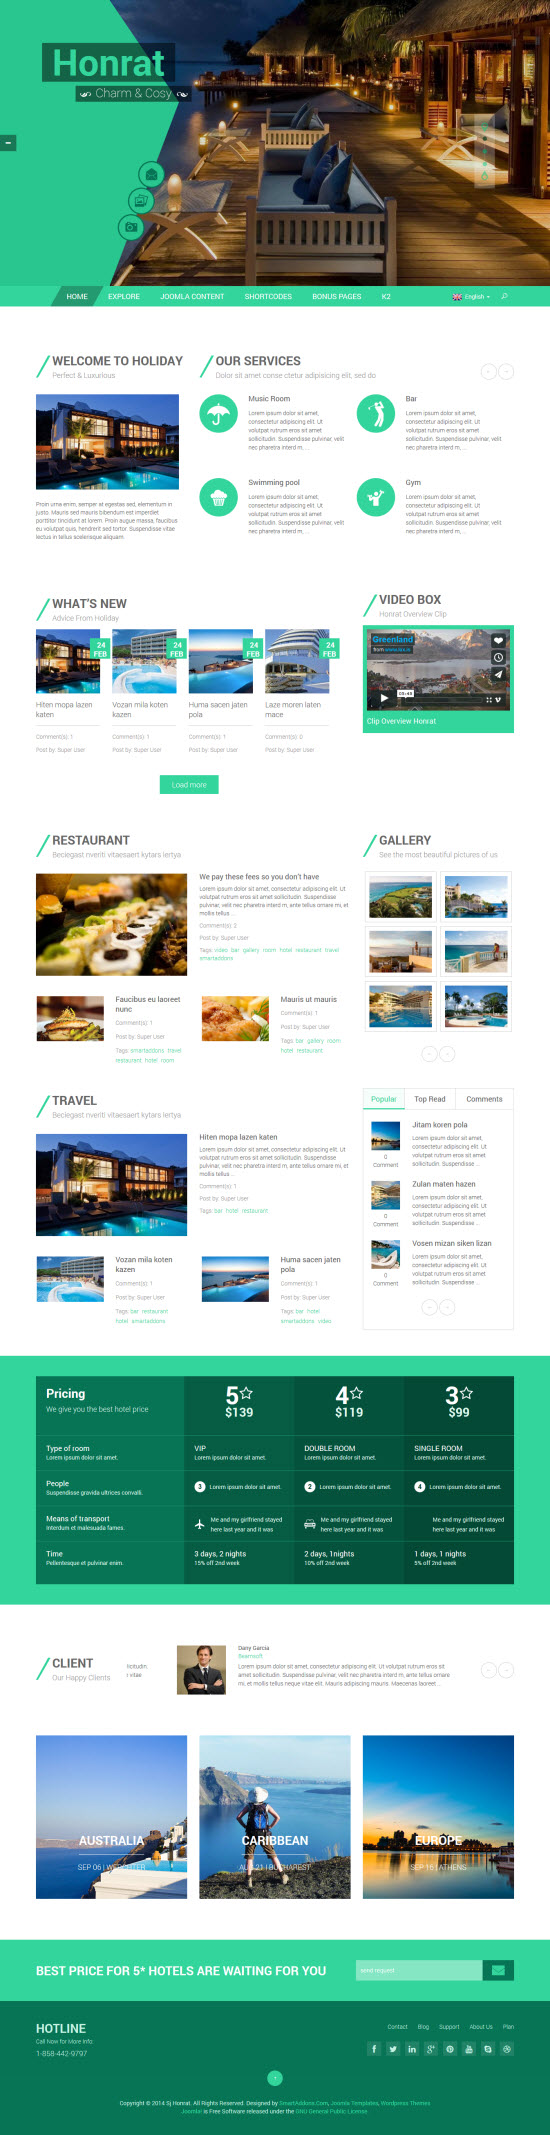 SJ Honrat - Responsive Joomla Hotel, resort & spa Template - 01-index.jpg